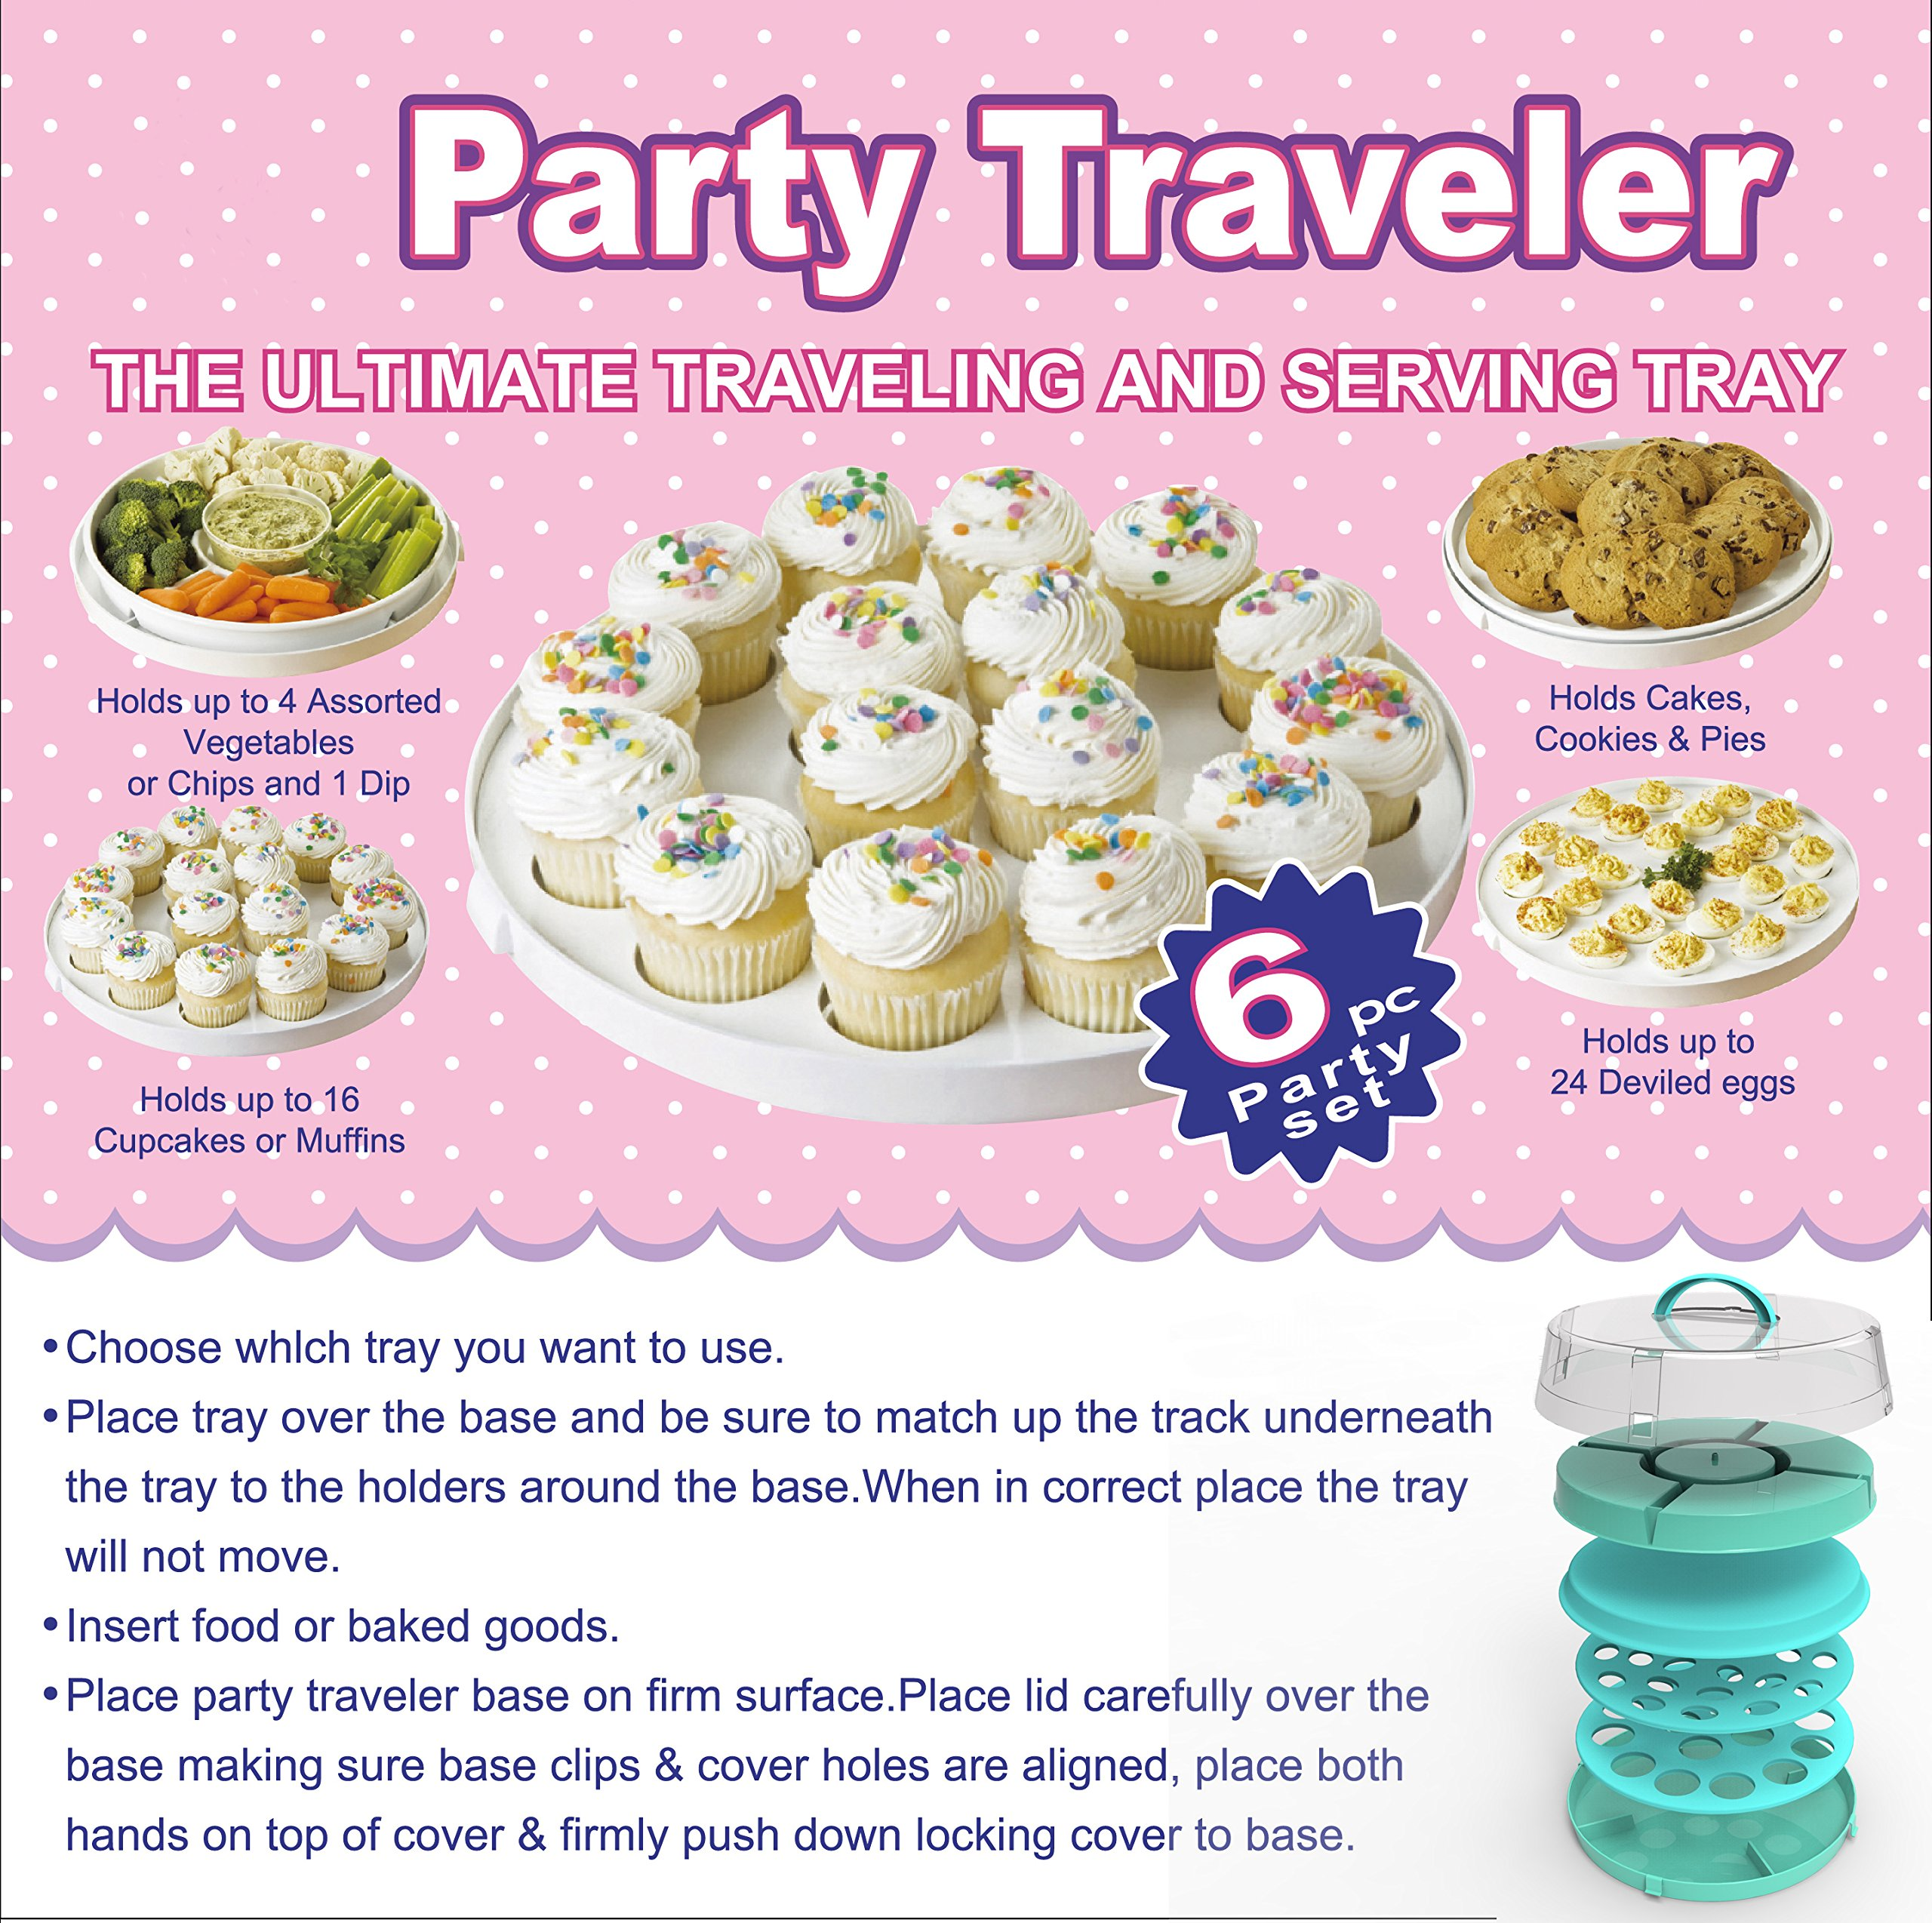 4-in-1 Cake Carrier - kitchen safe locking container - cupcake caddy - cake plate with dome - dessert tray and cover - Locking lid pies container bundt cake holder by DOTERNITY (Image #6)